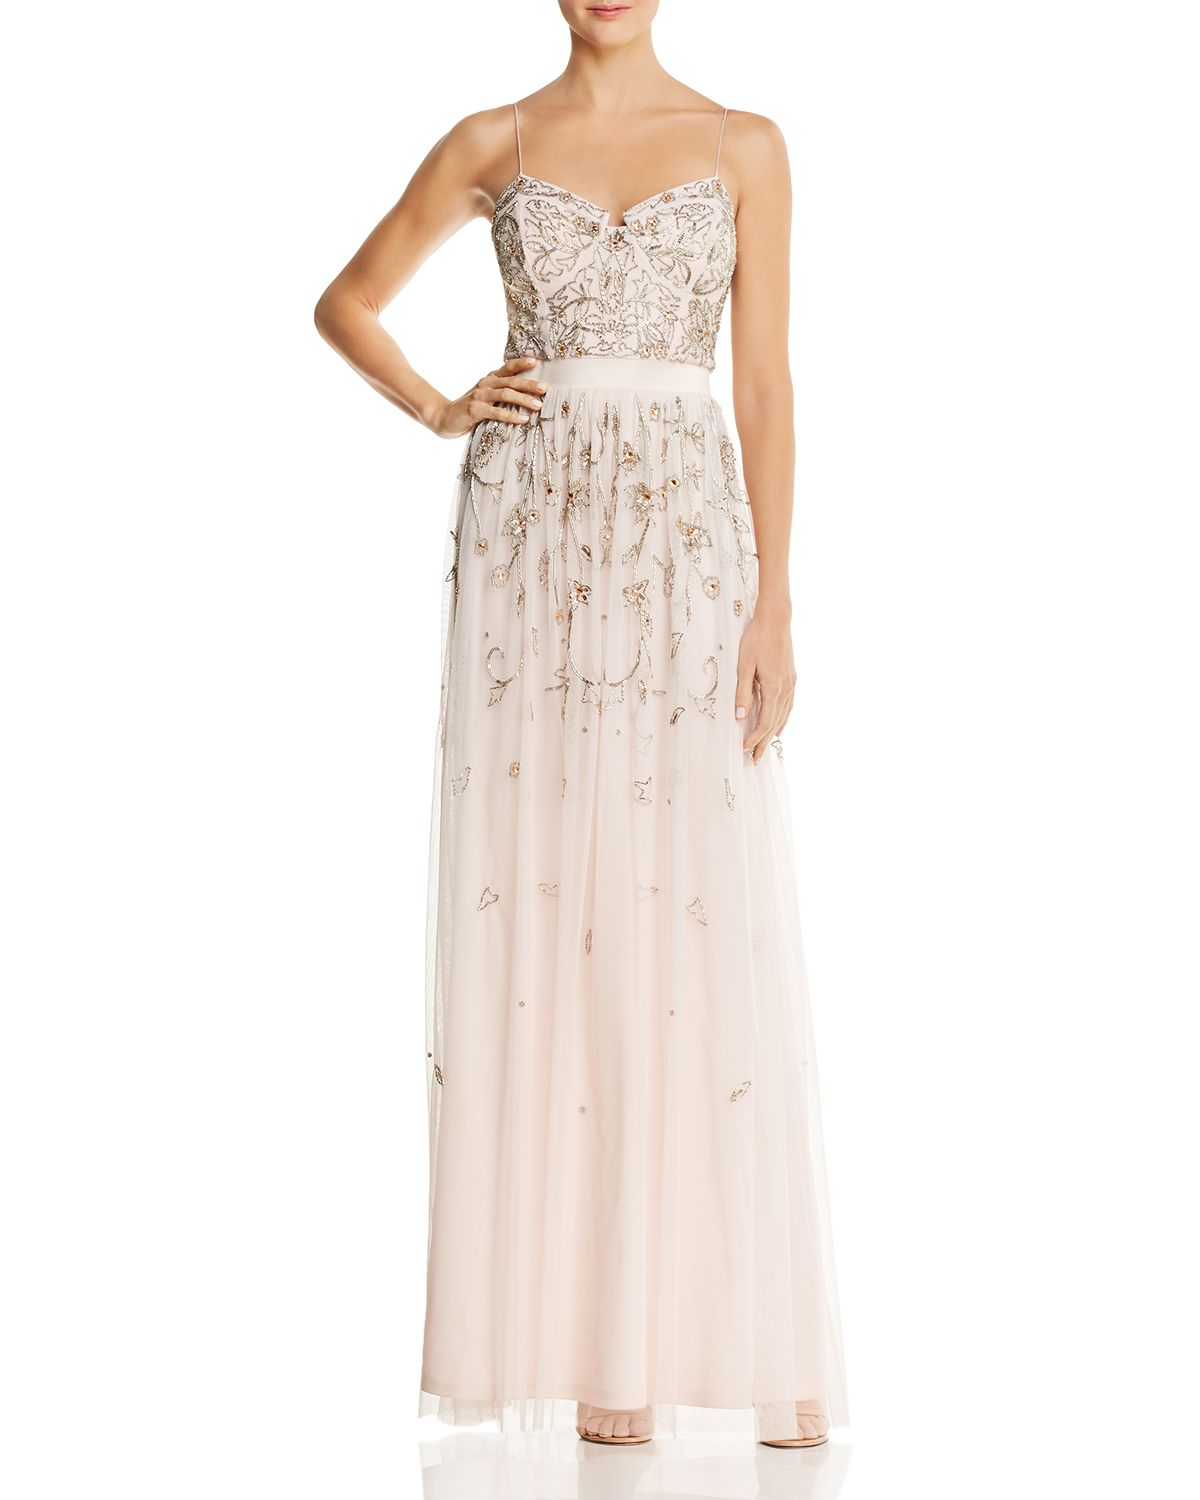 Embellished Bustier Gown by Aidan Mattox